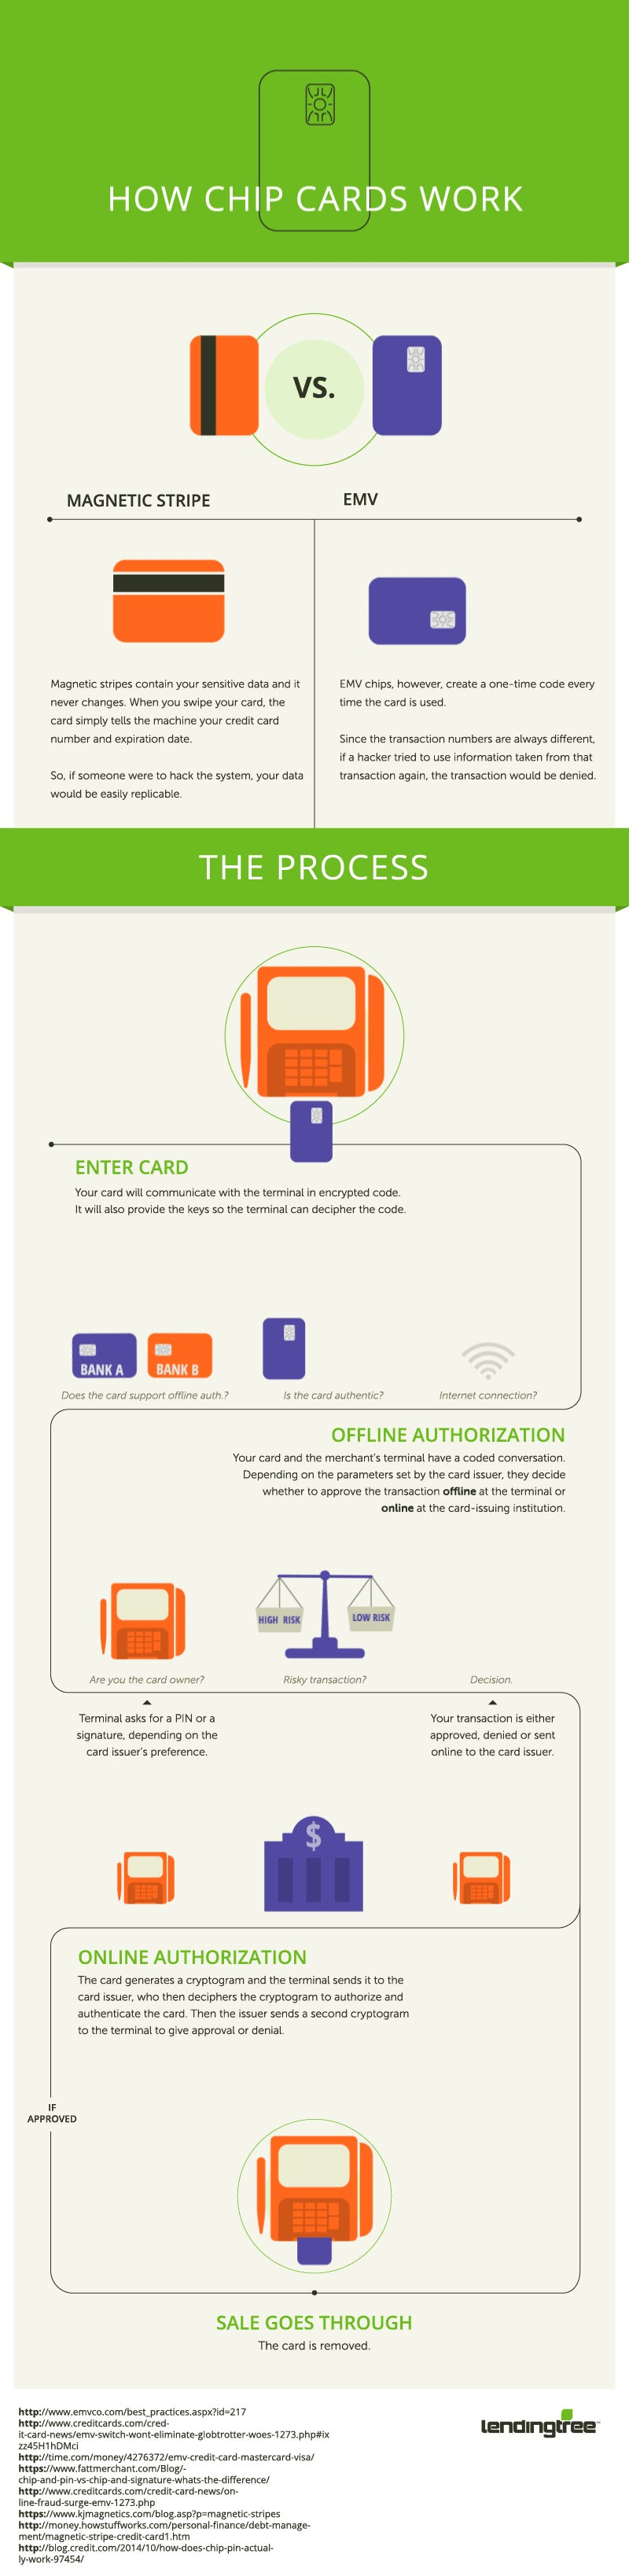 This Infographic Breaks Down How Chip Credit Cards Work